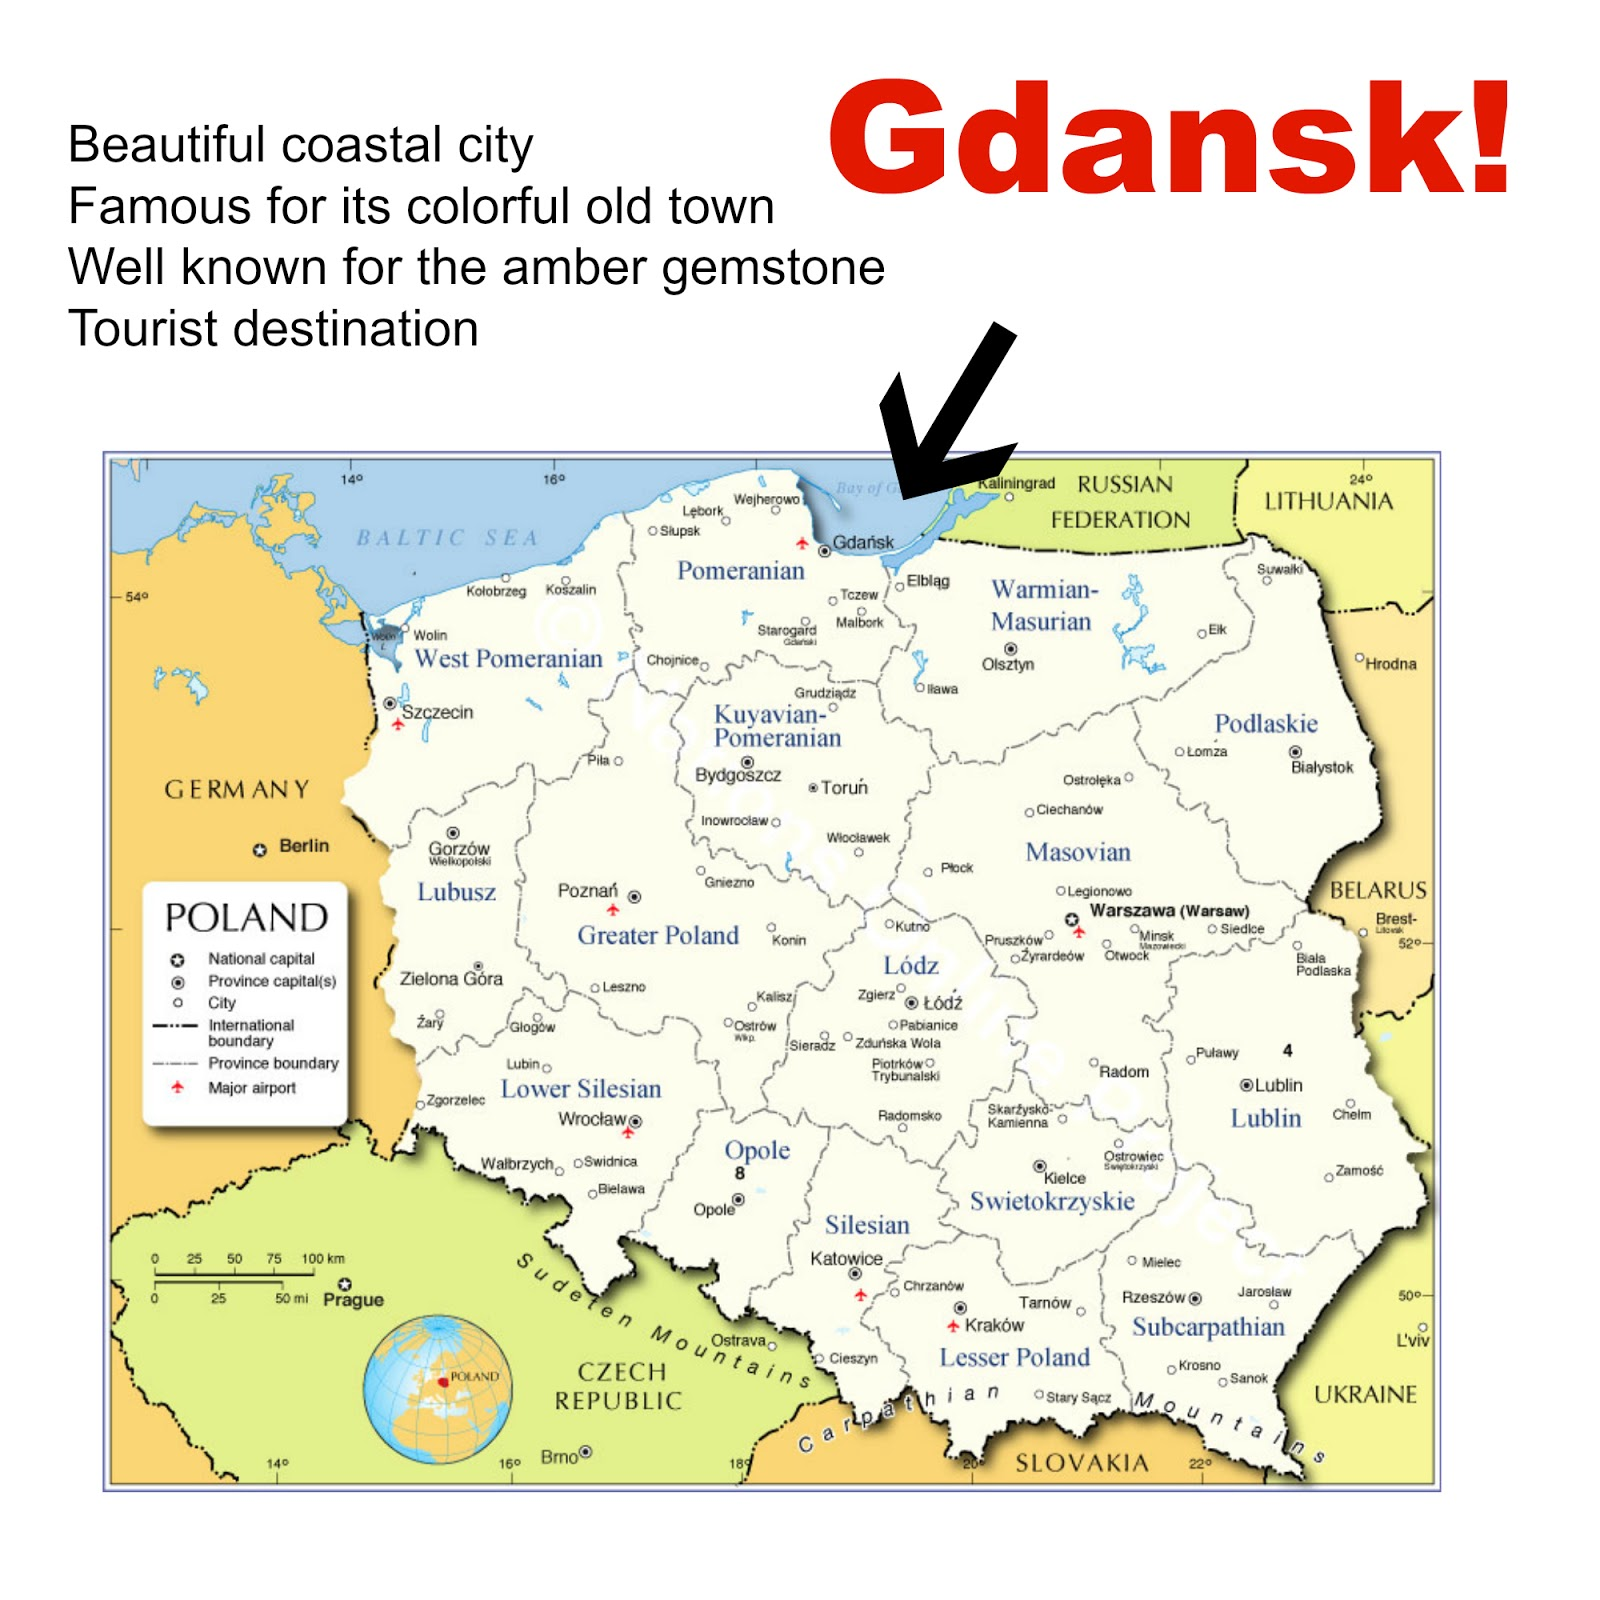 gdansk poland 6 months siostra young service beautiful branch q a in english class